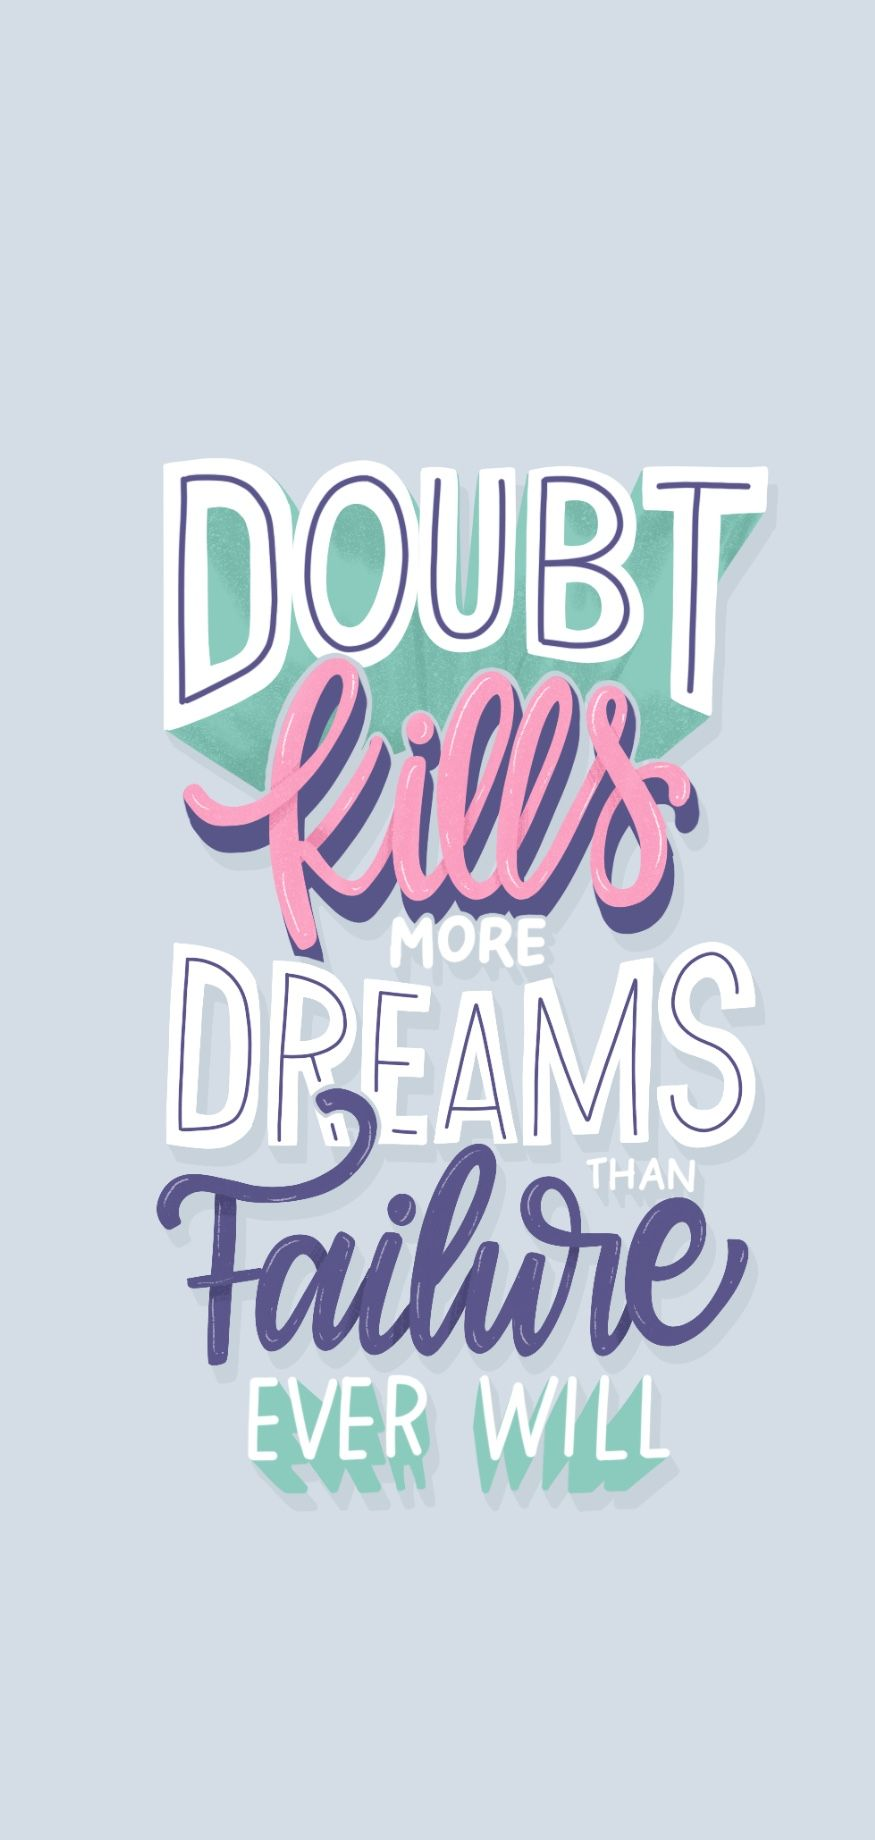 No Doubts Screensaver Quotes Aesthetic Desktop Wallpaper Inspirational Quotes For Girls